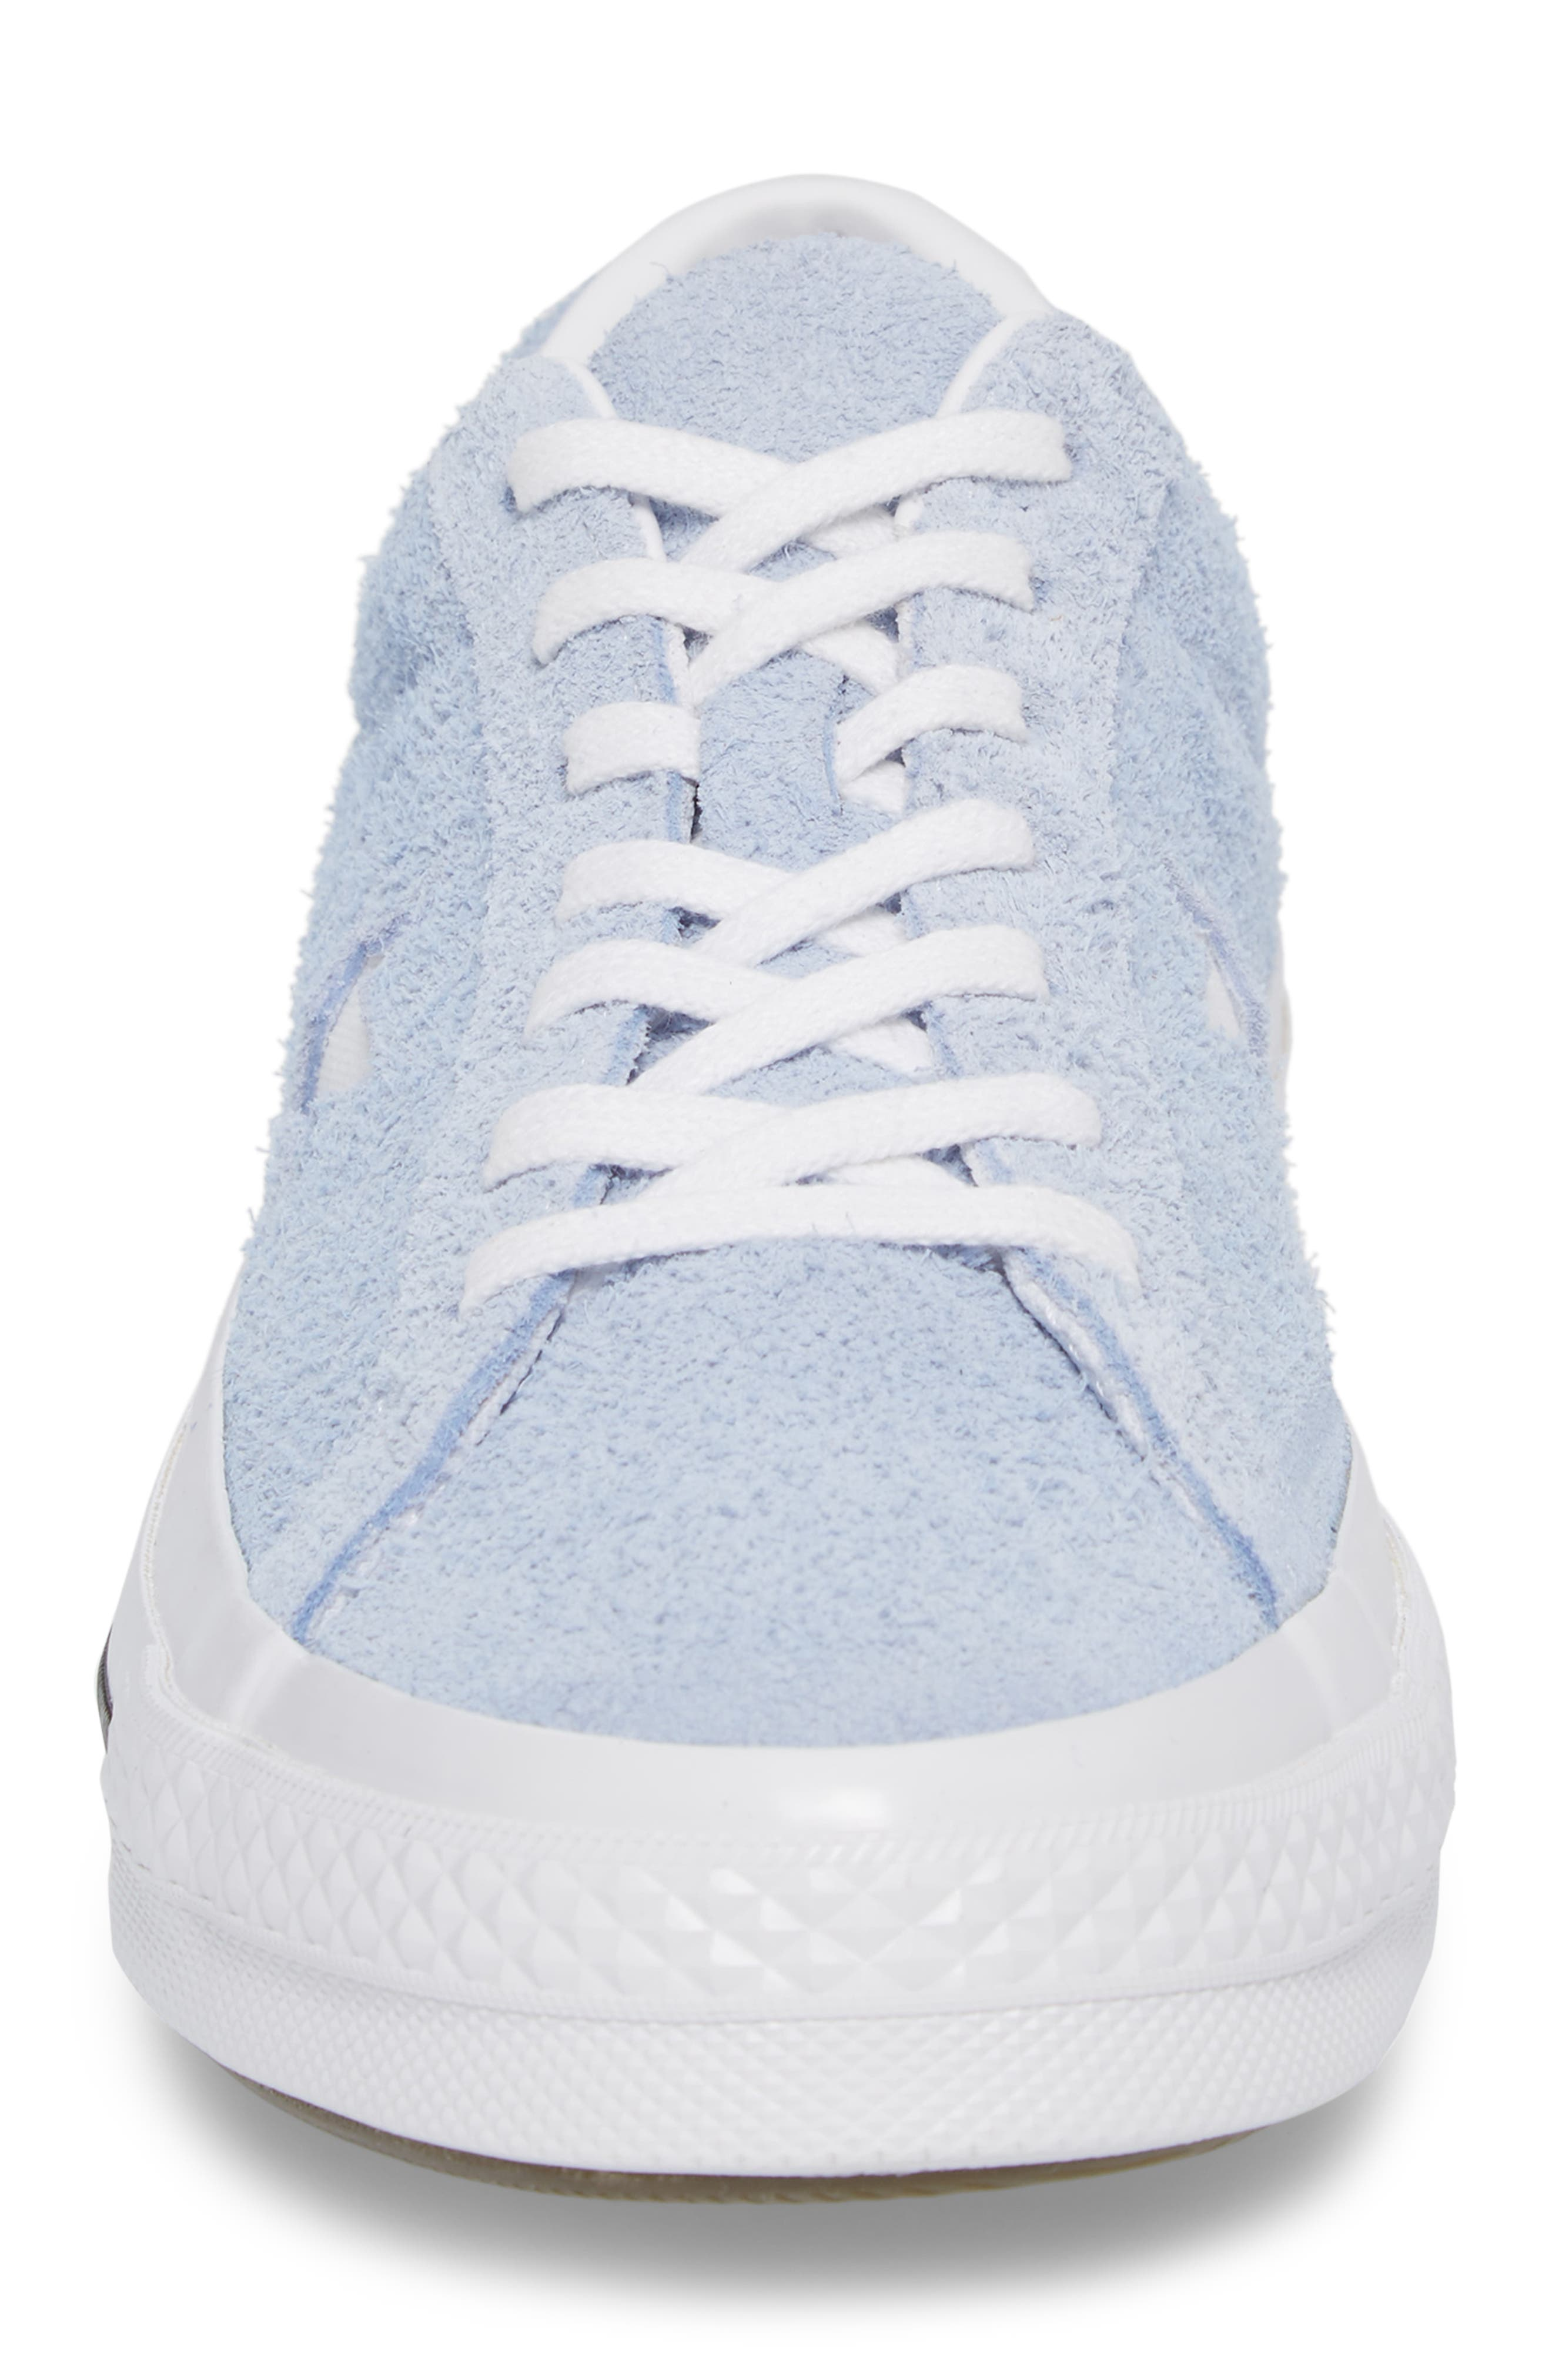 One Star Sneaker,                             Alternate thumbnail 4, color,                             Blue Chill Suede